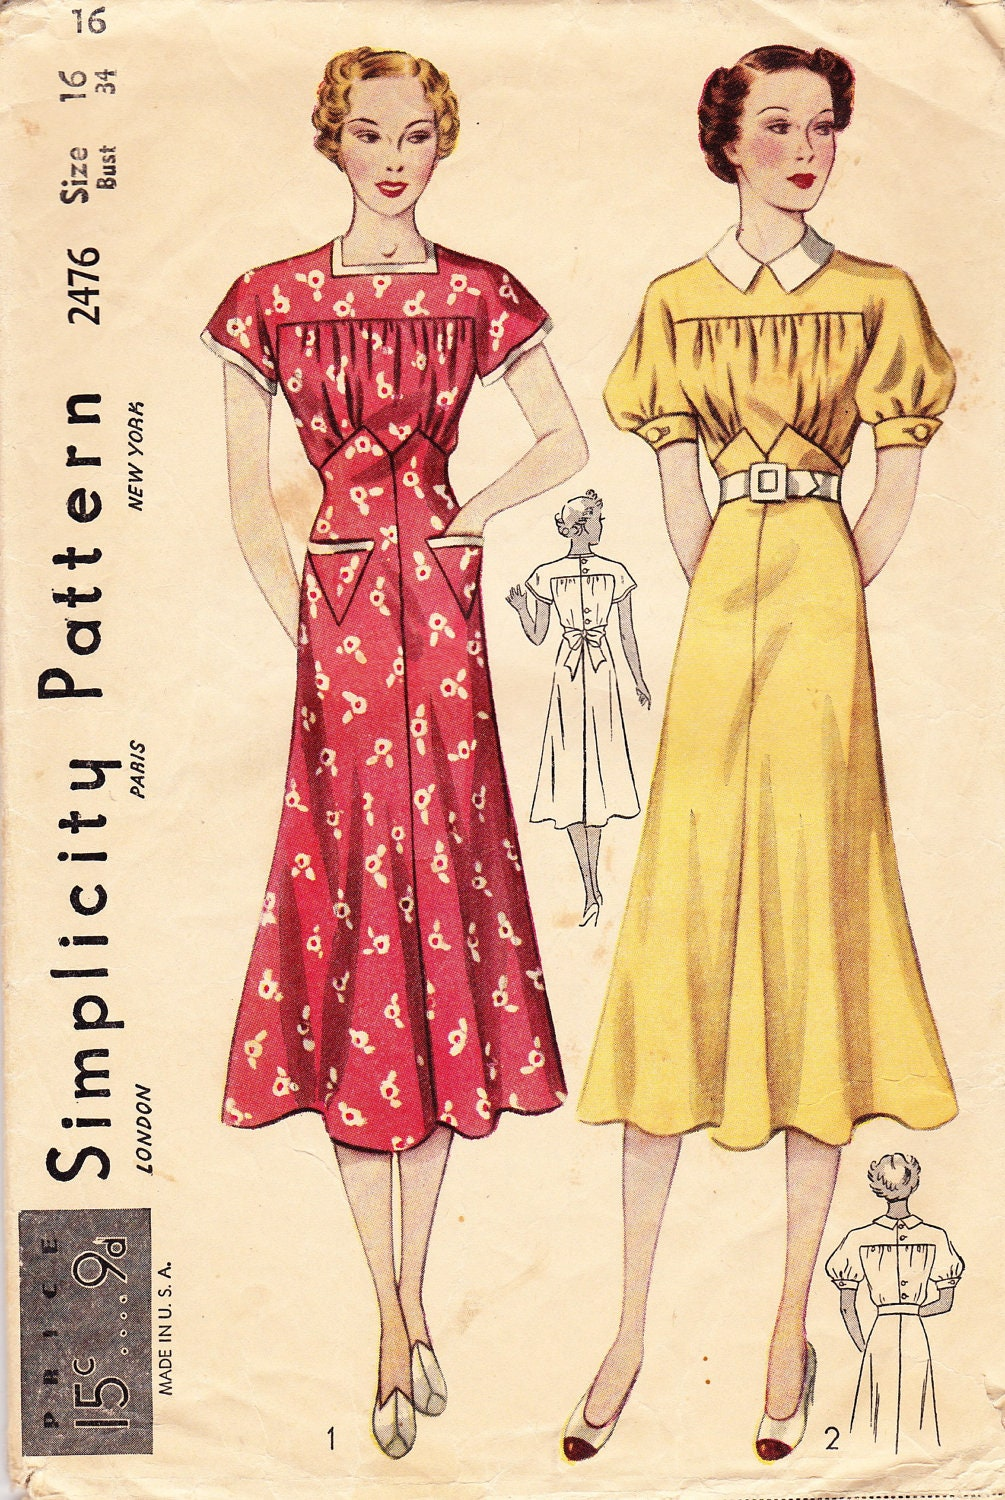 Vintage 1930's Women's Dress Pattern Simplicity 2476